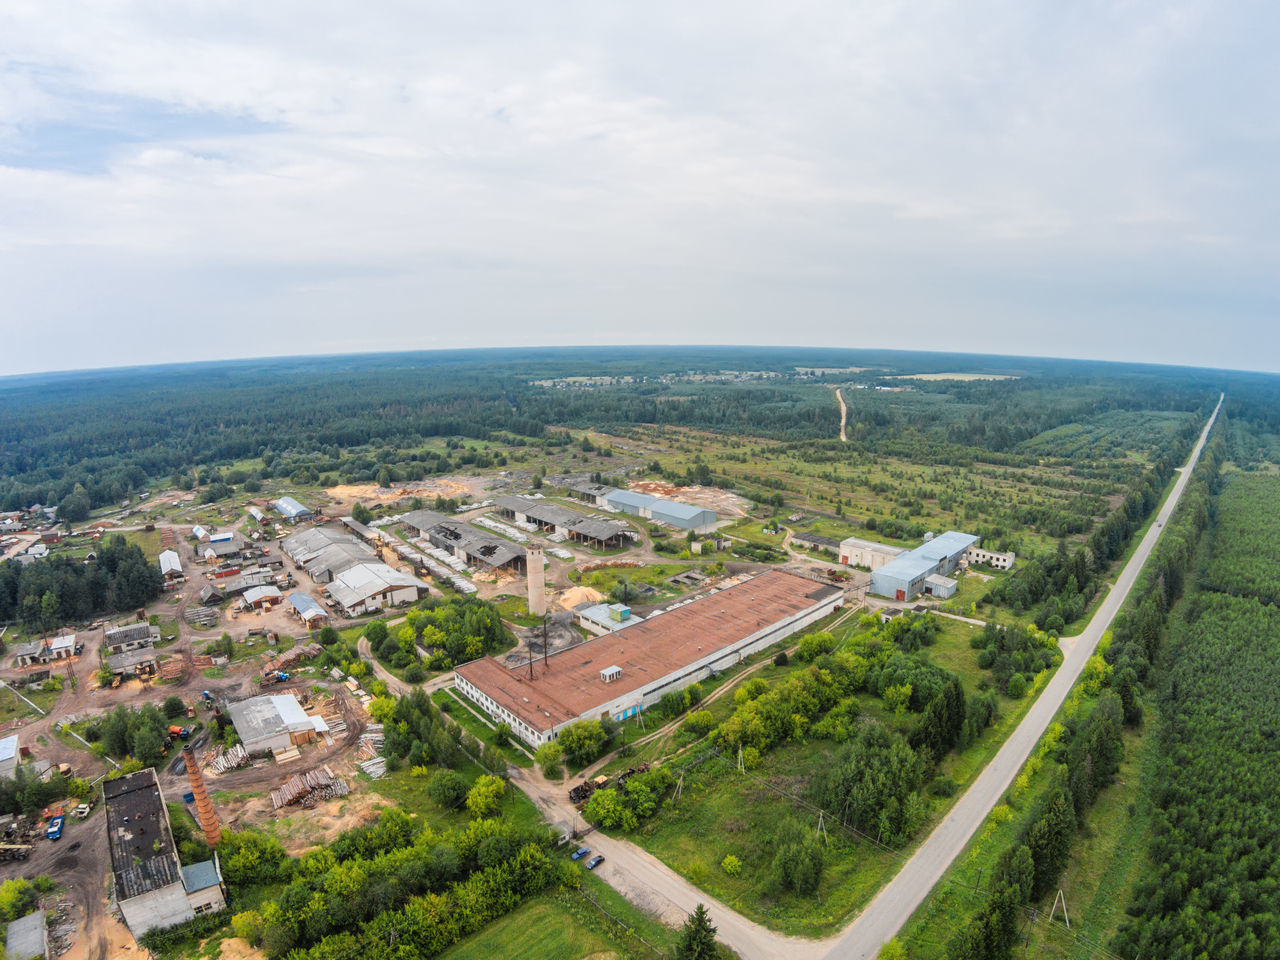 Aerial view of the industrial zone of the village Fabrika A Bird's Eye View Aerial Aerial View City Cityscape Day Drone  Dronephotography High Angle View Industrial Nature No People Outdoors Russia Sky Top Perspective Tree Village